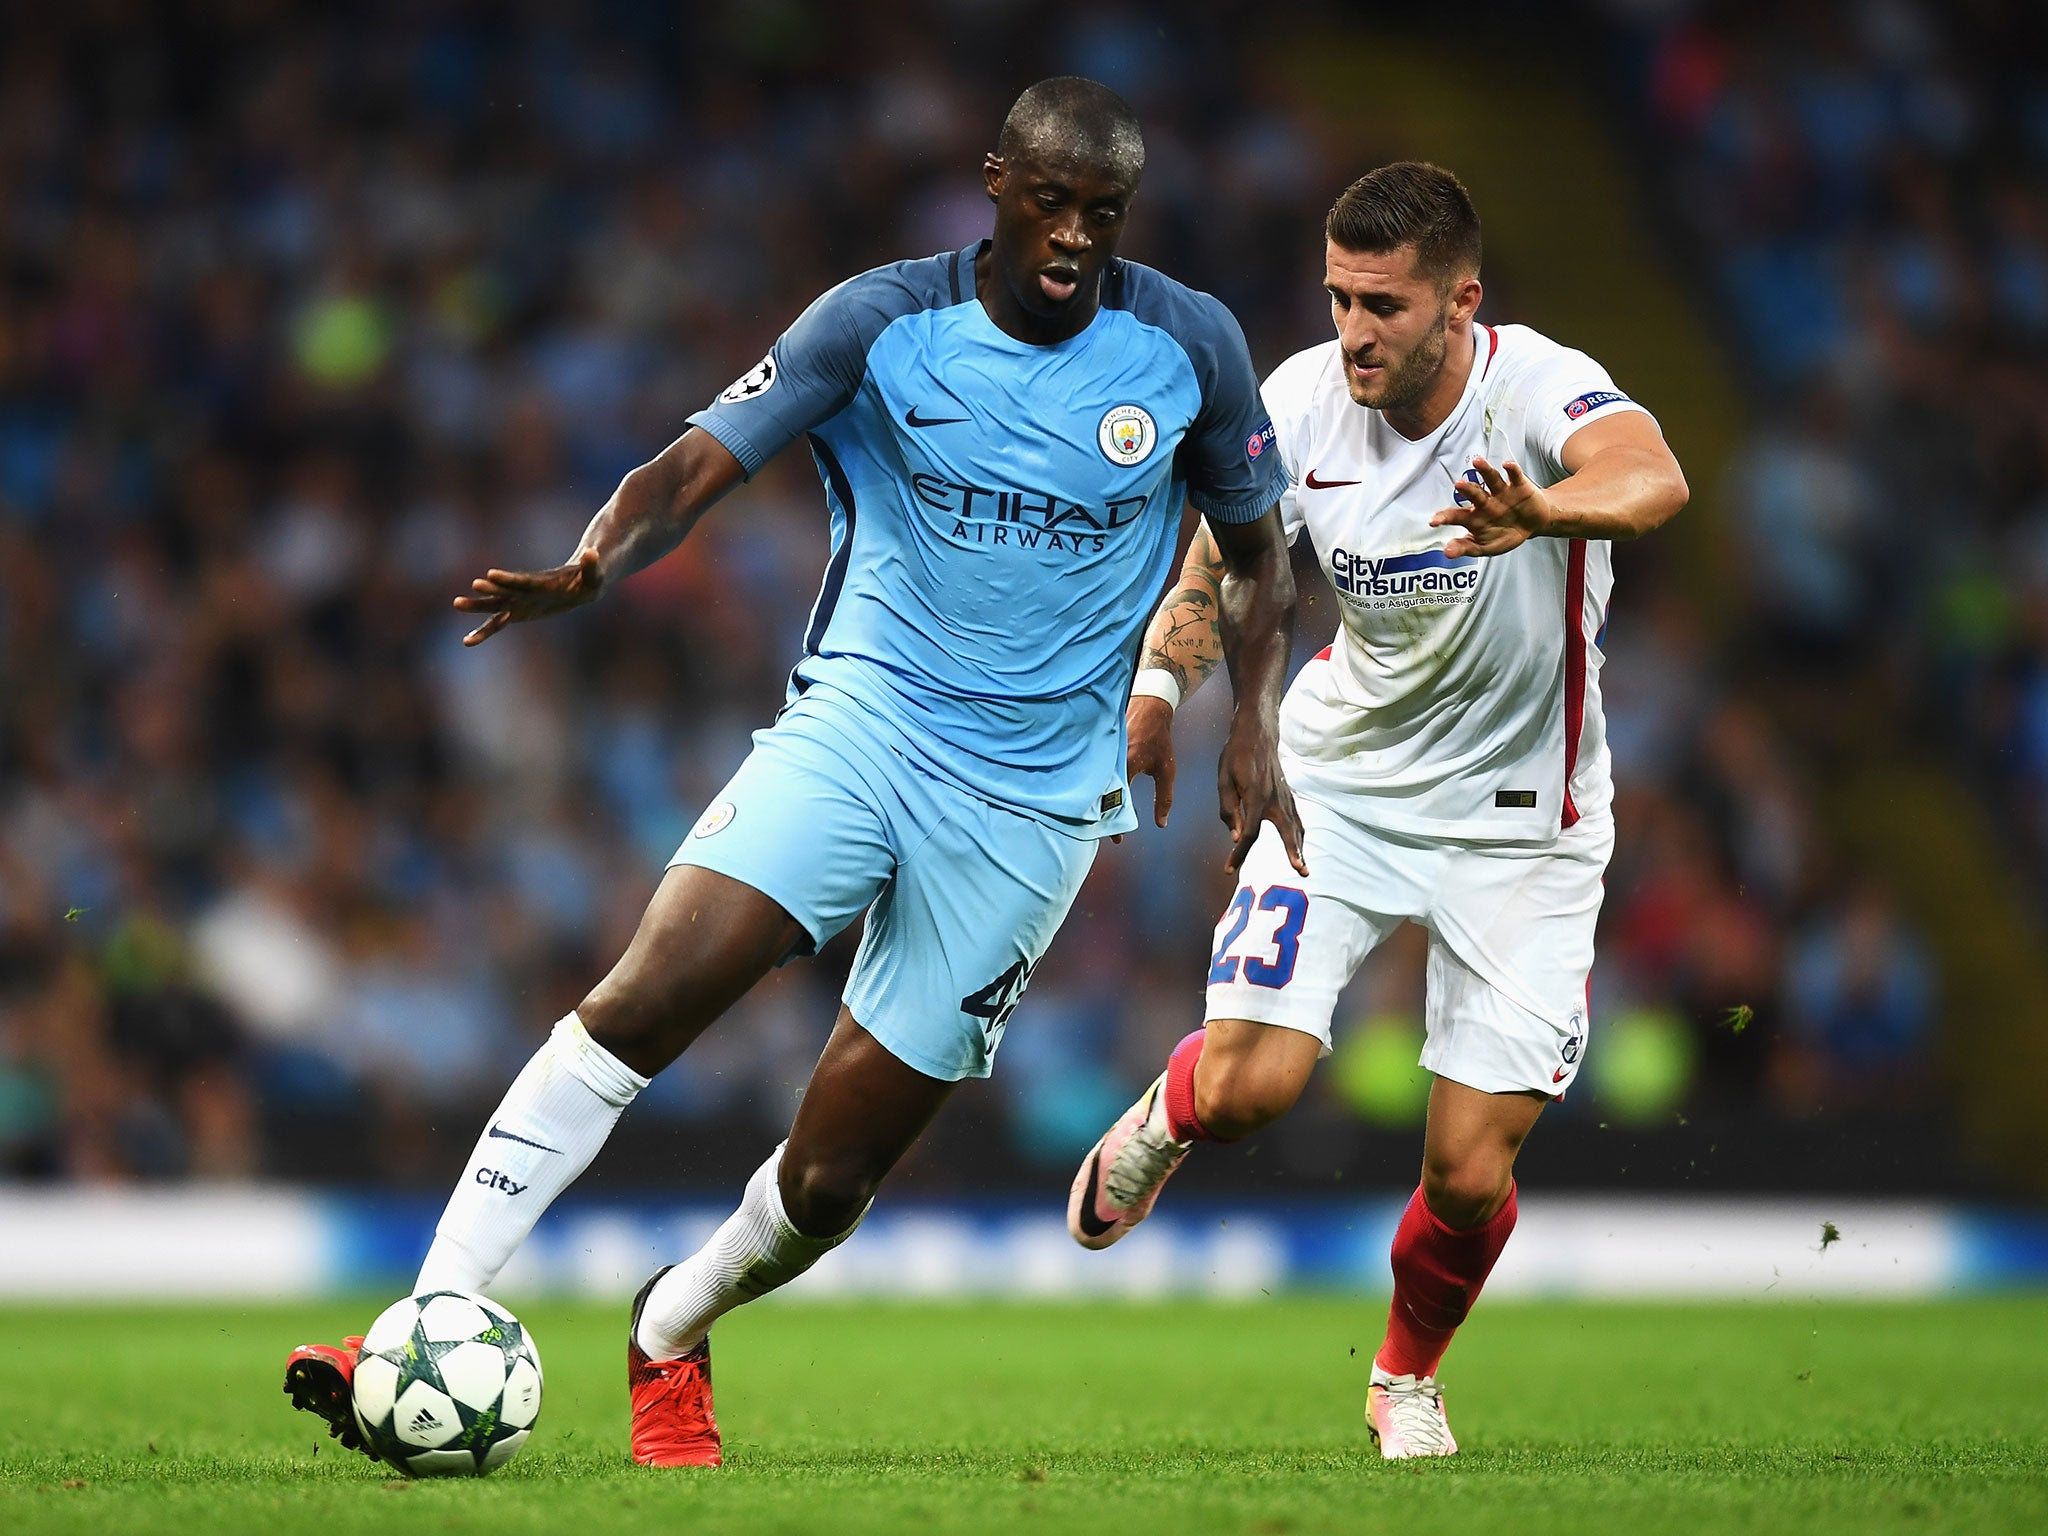 Pep Guardiola told Yaya Toure Manchester City was a s team